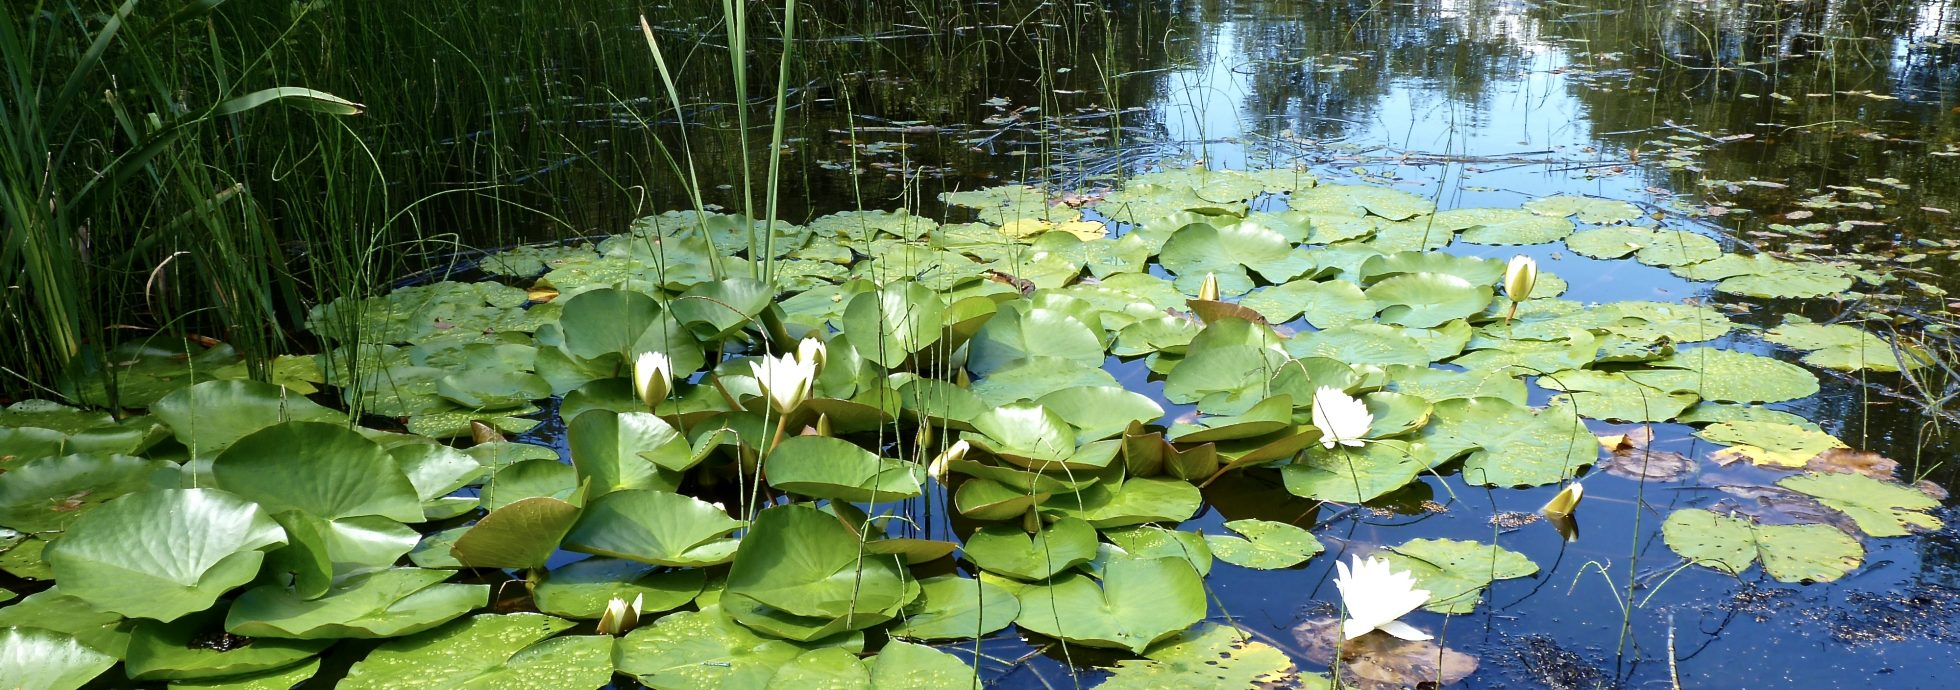 Lily Pond Trem-y-Fro Glamping Vale of Glamorgan